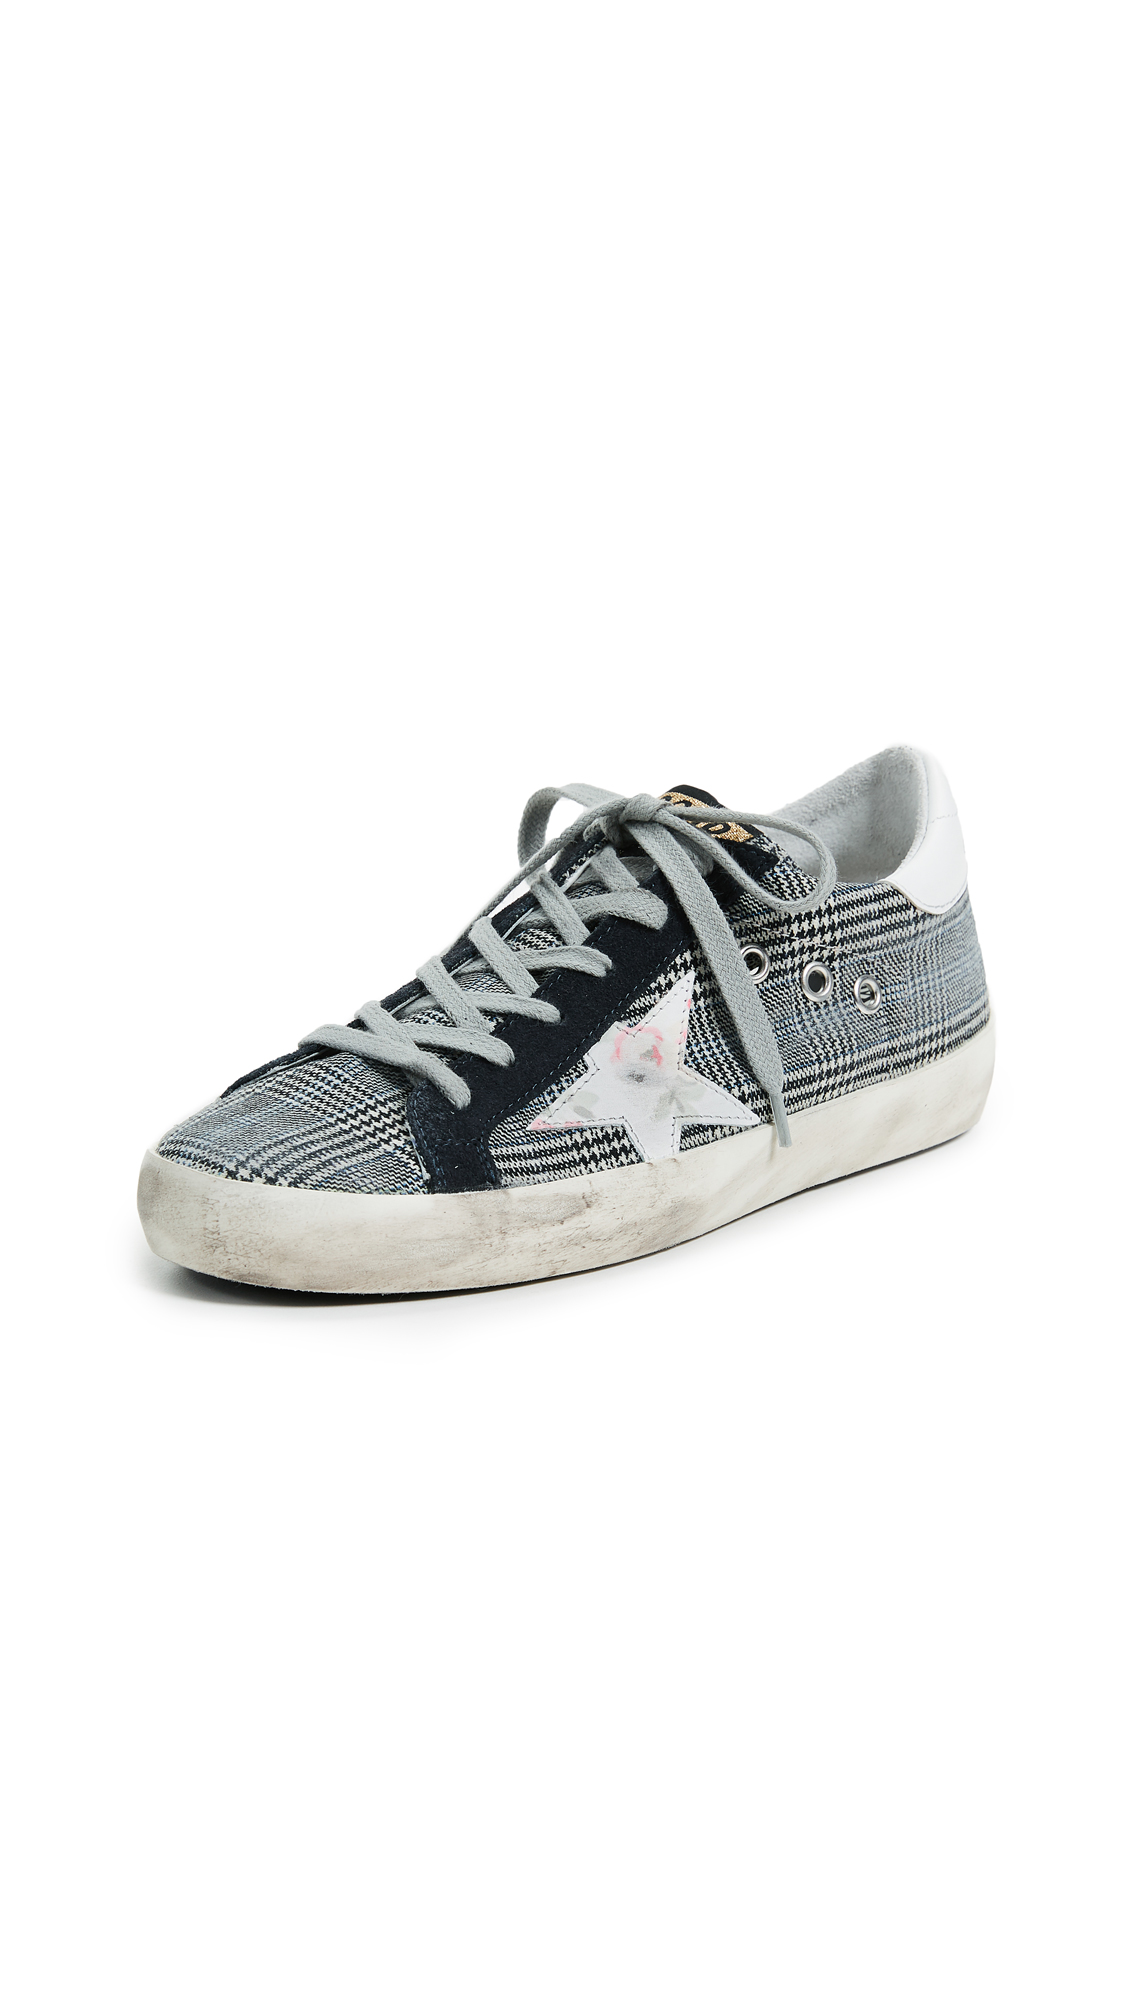 Golden Goose Superstar Sneakers - Tweed/Floral